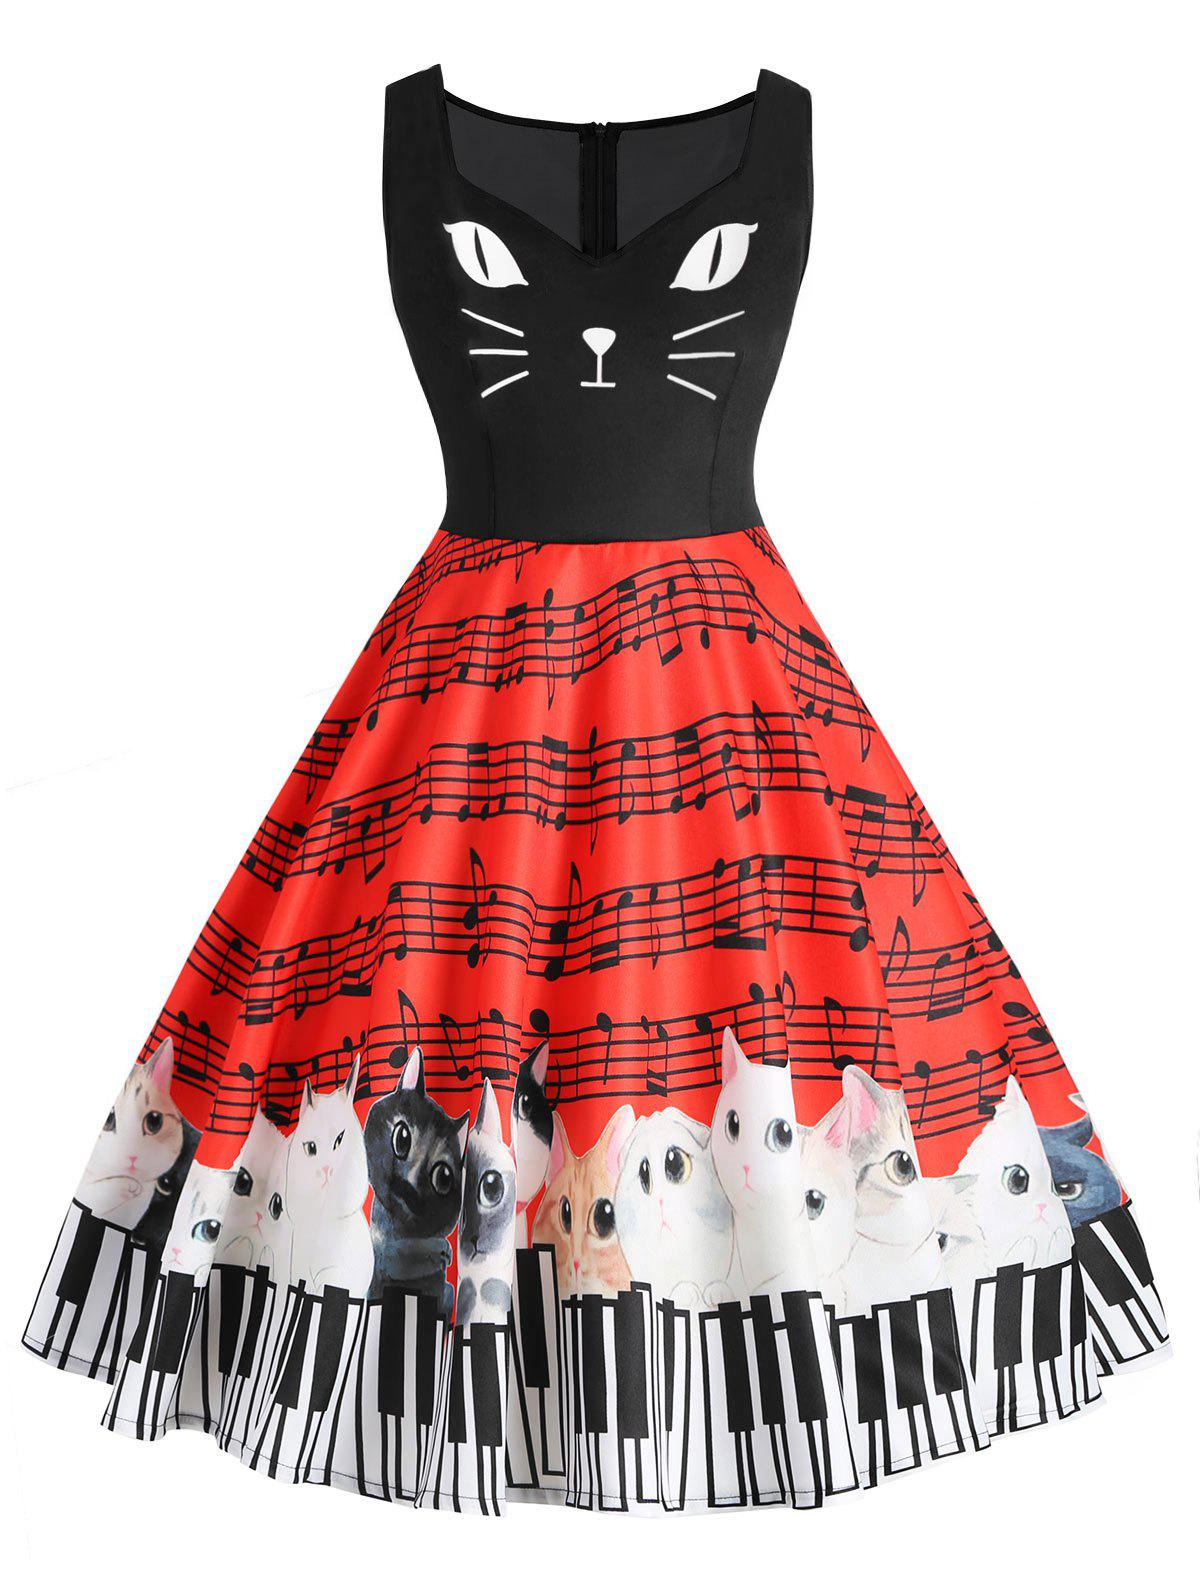 8718be2ad54 56% OFF   2019 Plus Size Musical Note Cat Graphic Flare Dress ...